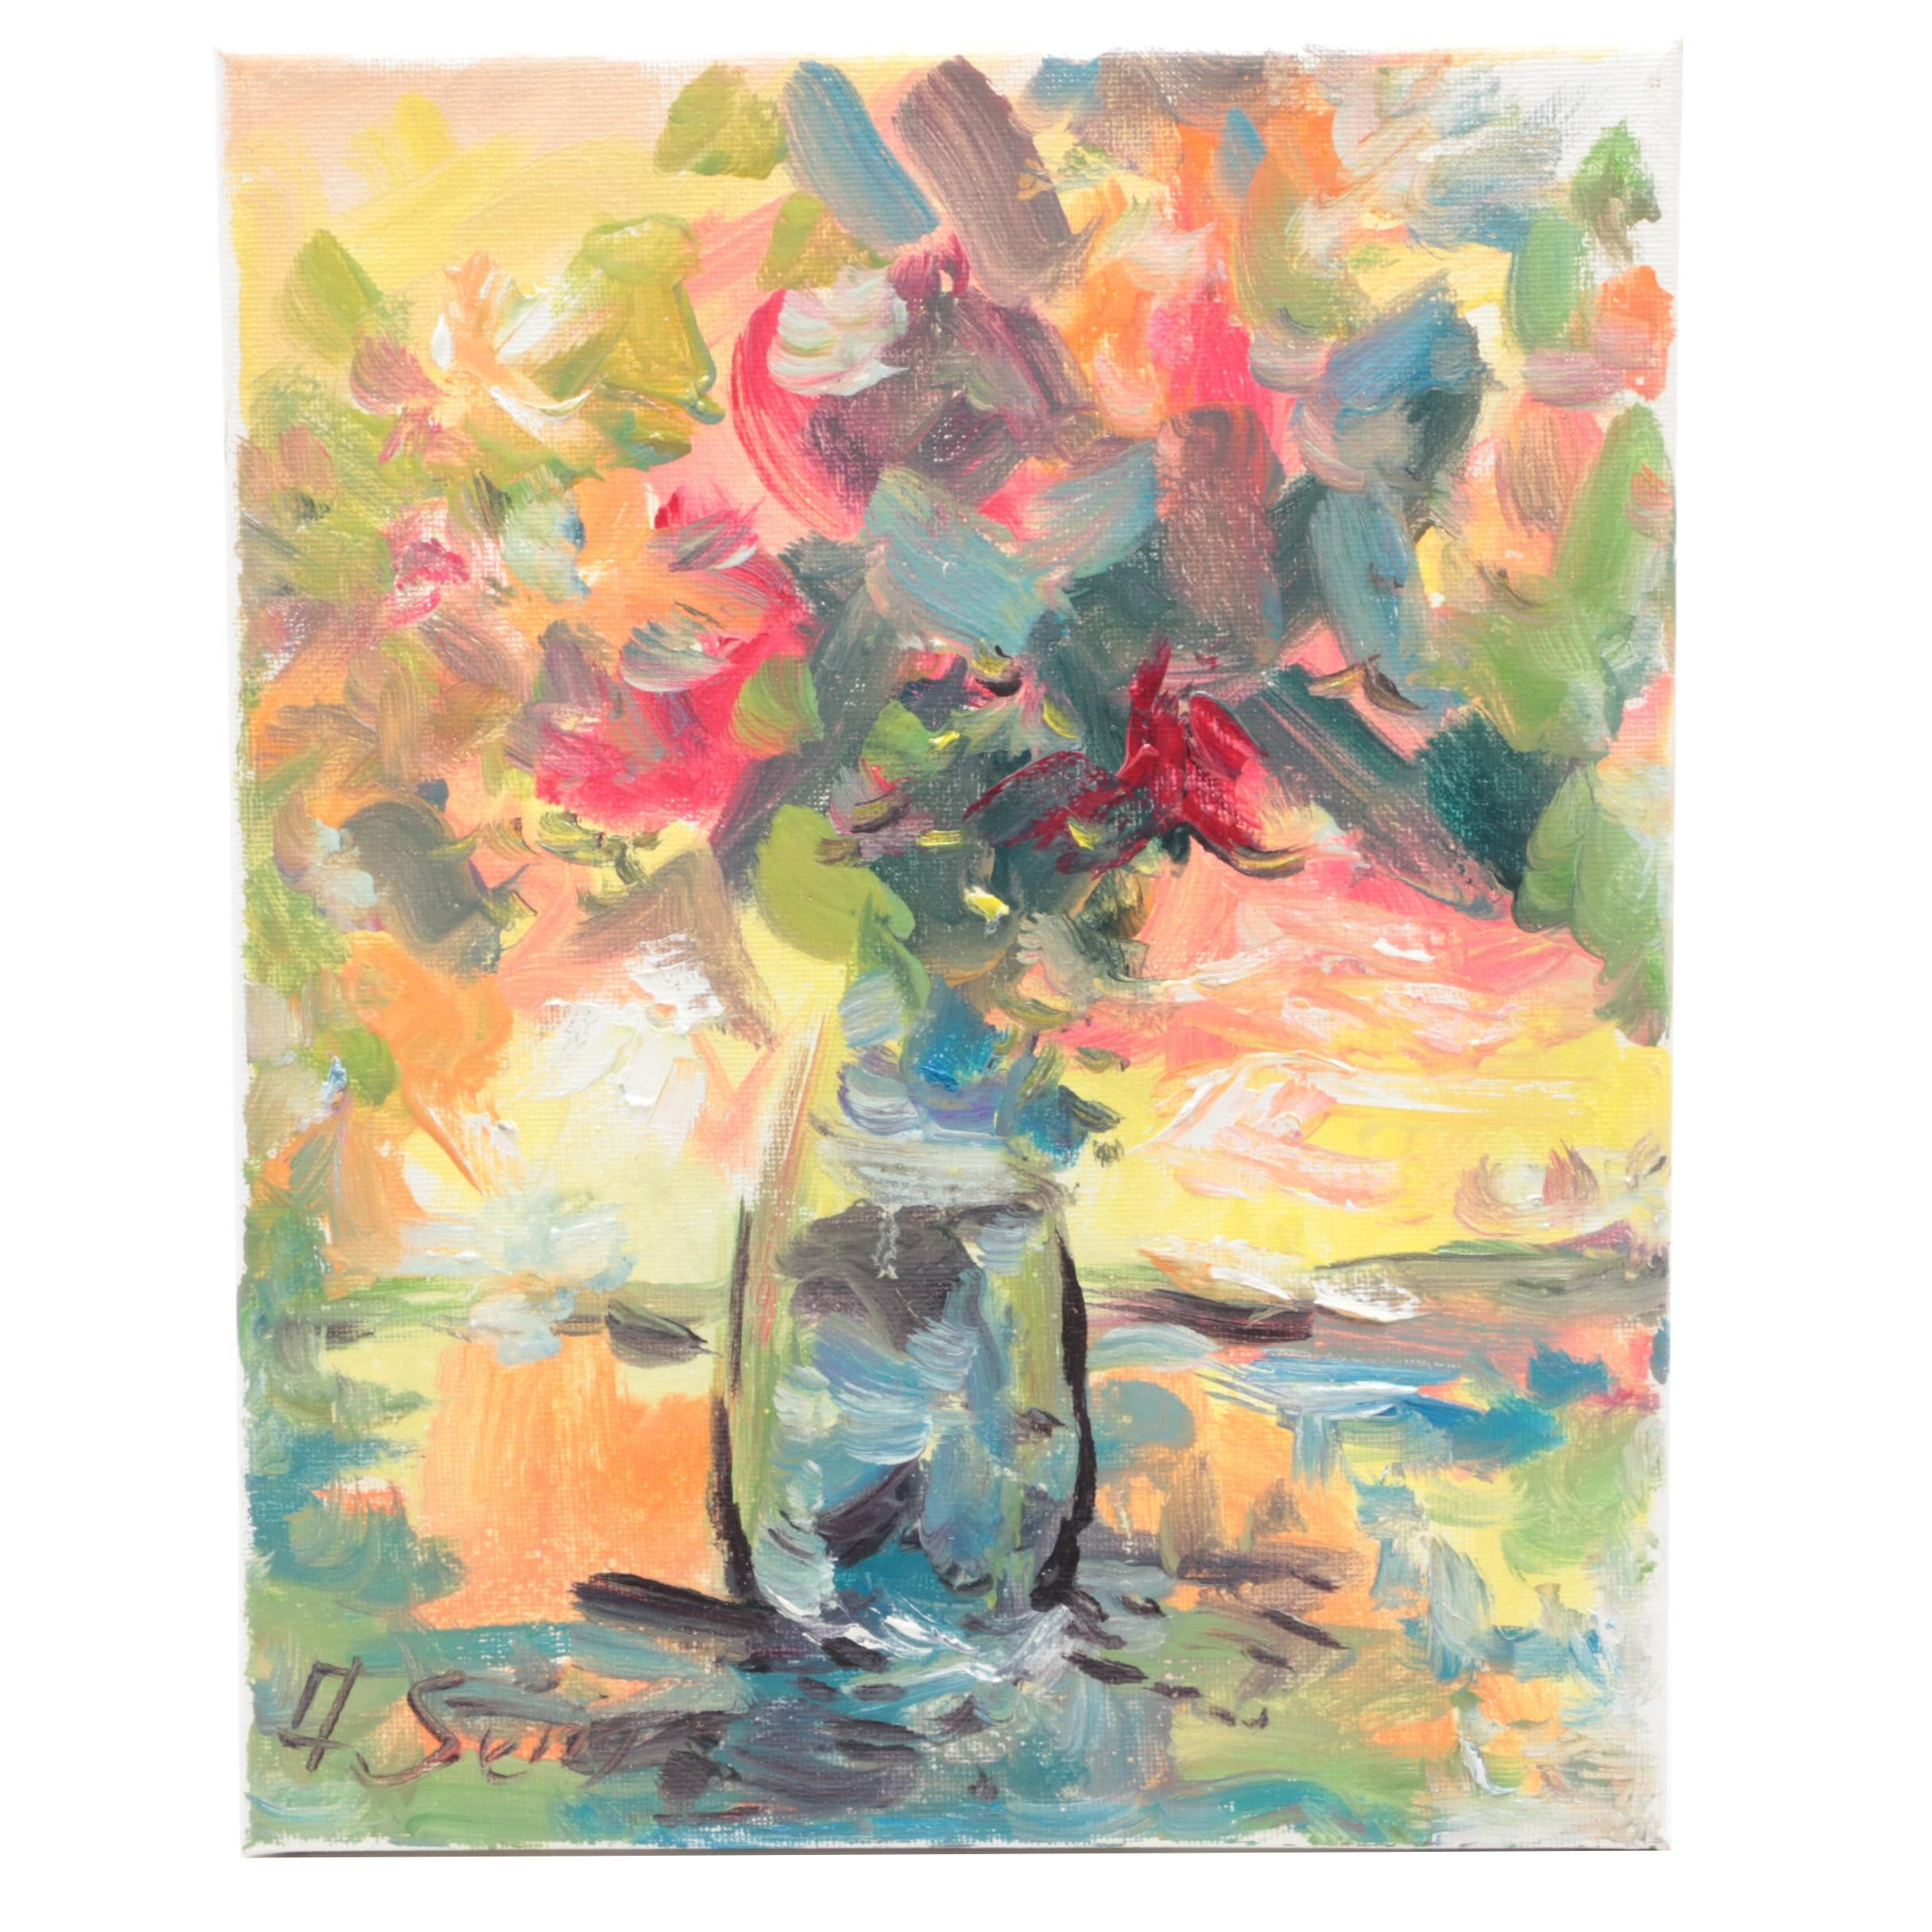 Andrew Semberecki Floral Still Life Oil Painting